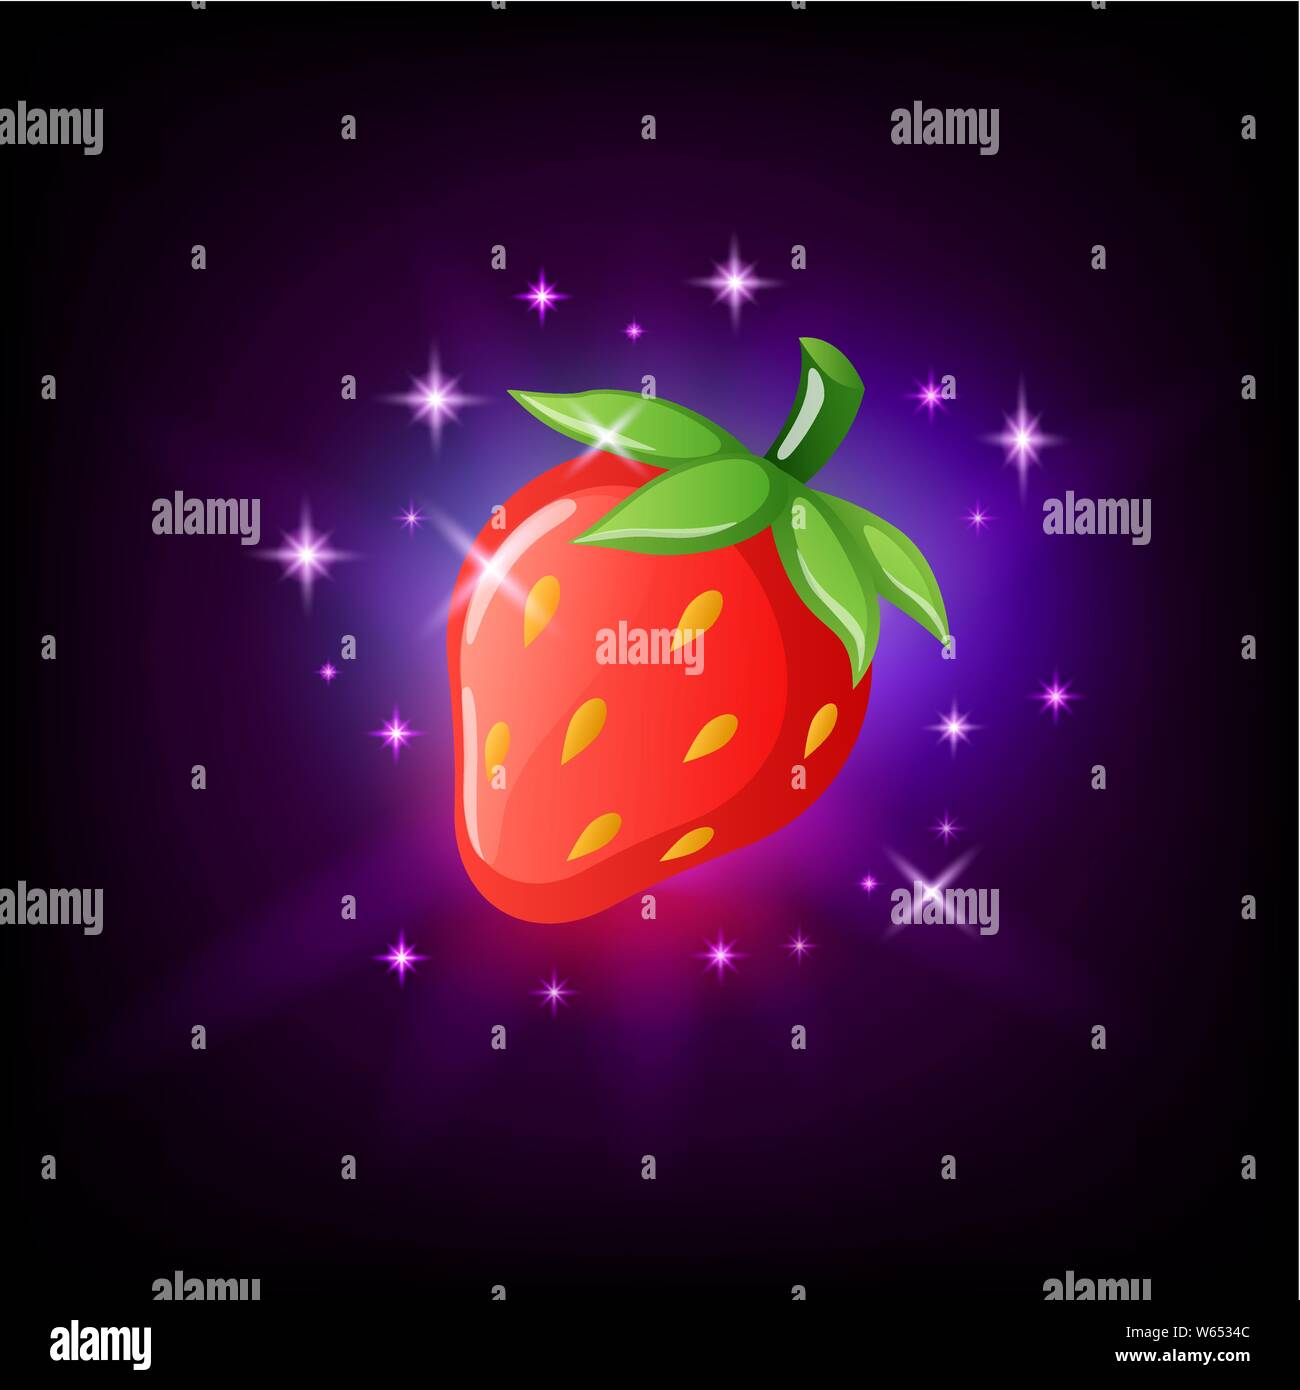 Bright Red Strawberry With Green Leaf And Seeds Slot Icon For Online Casino Or Logo For Mobile Game On Dark Purple Background Vector Illustration Stock Vector Image Art Alamy